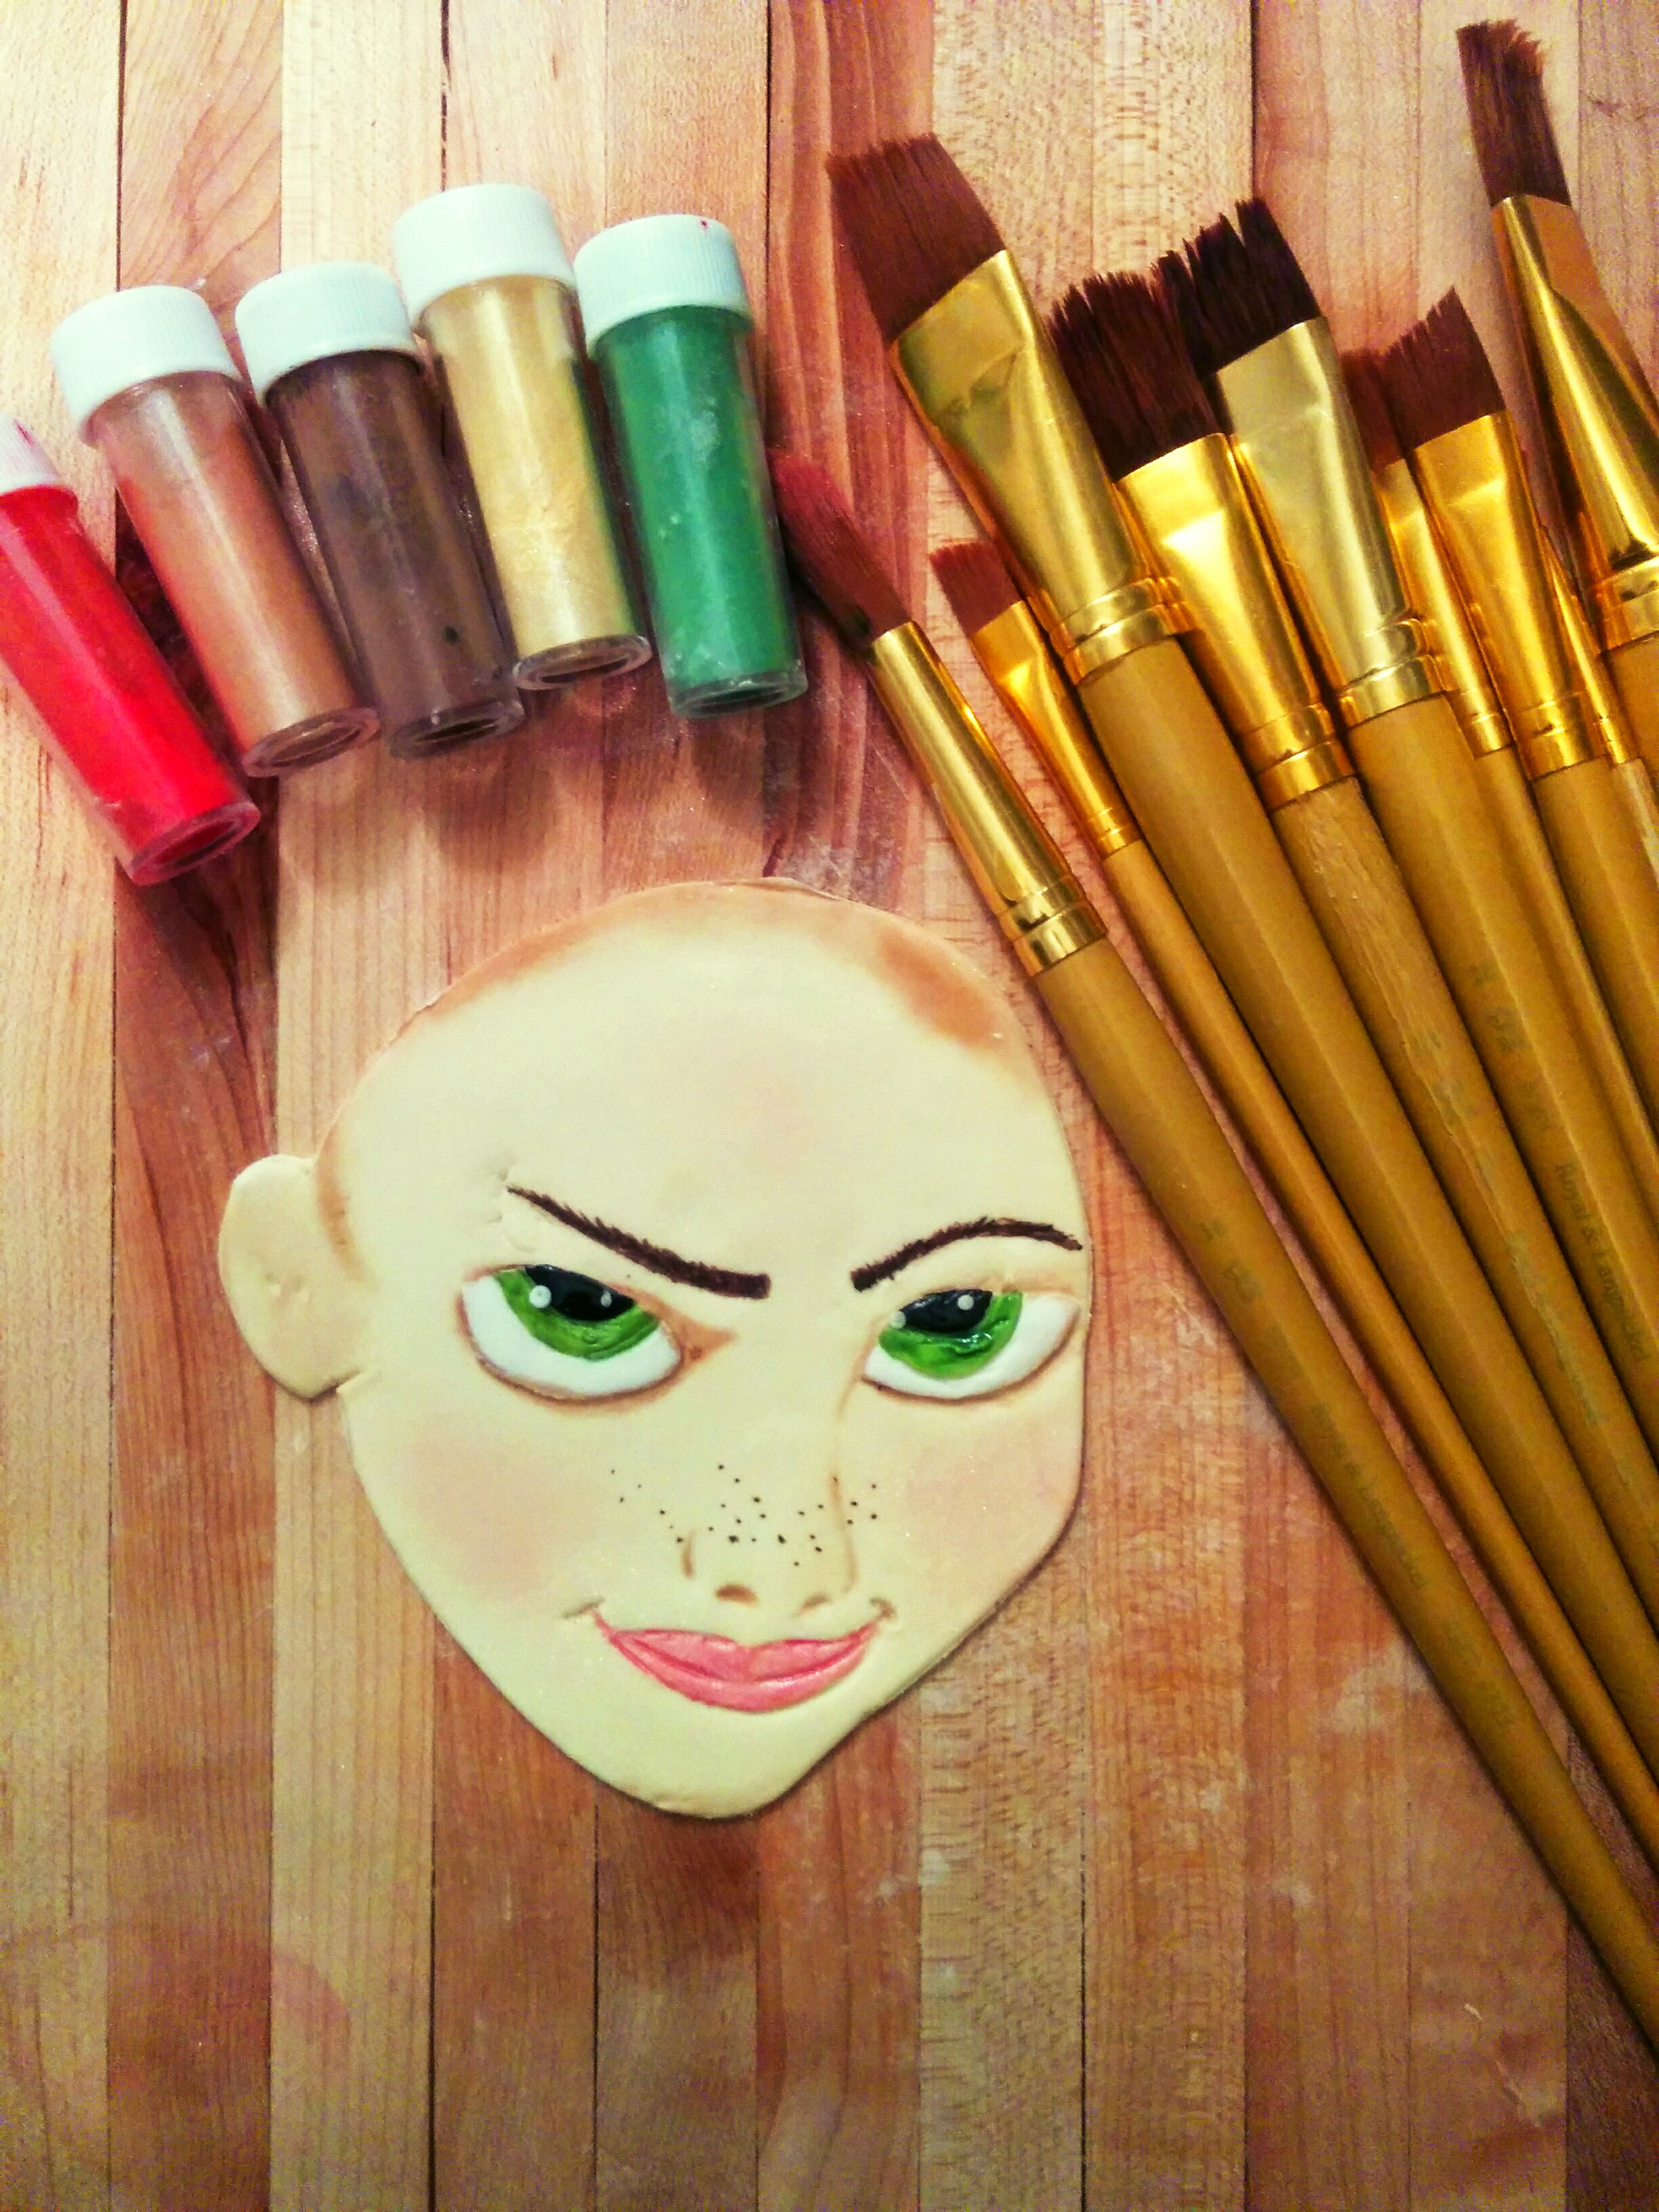 How to Paint Fondant Faces using Color/Luster Dust – Grated Nutmeg